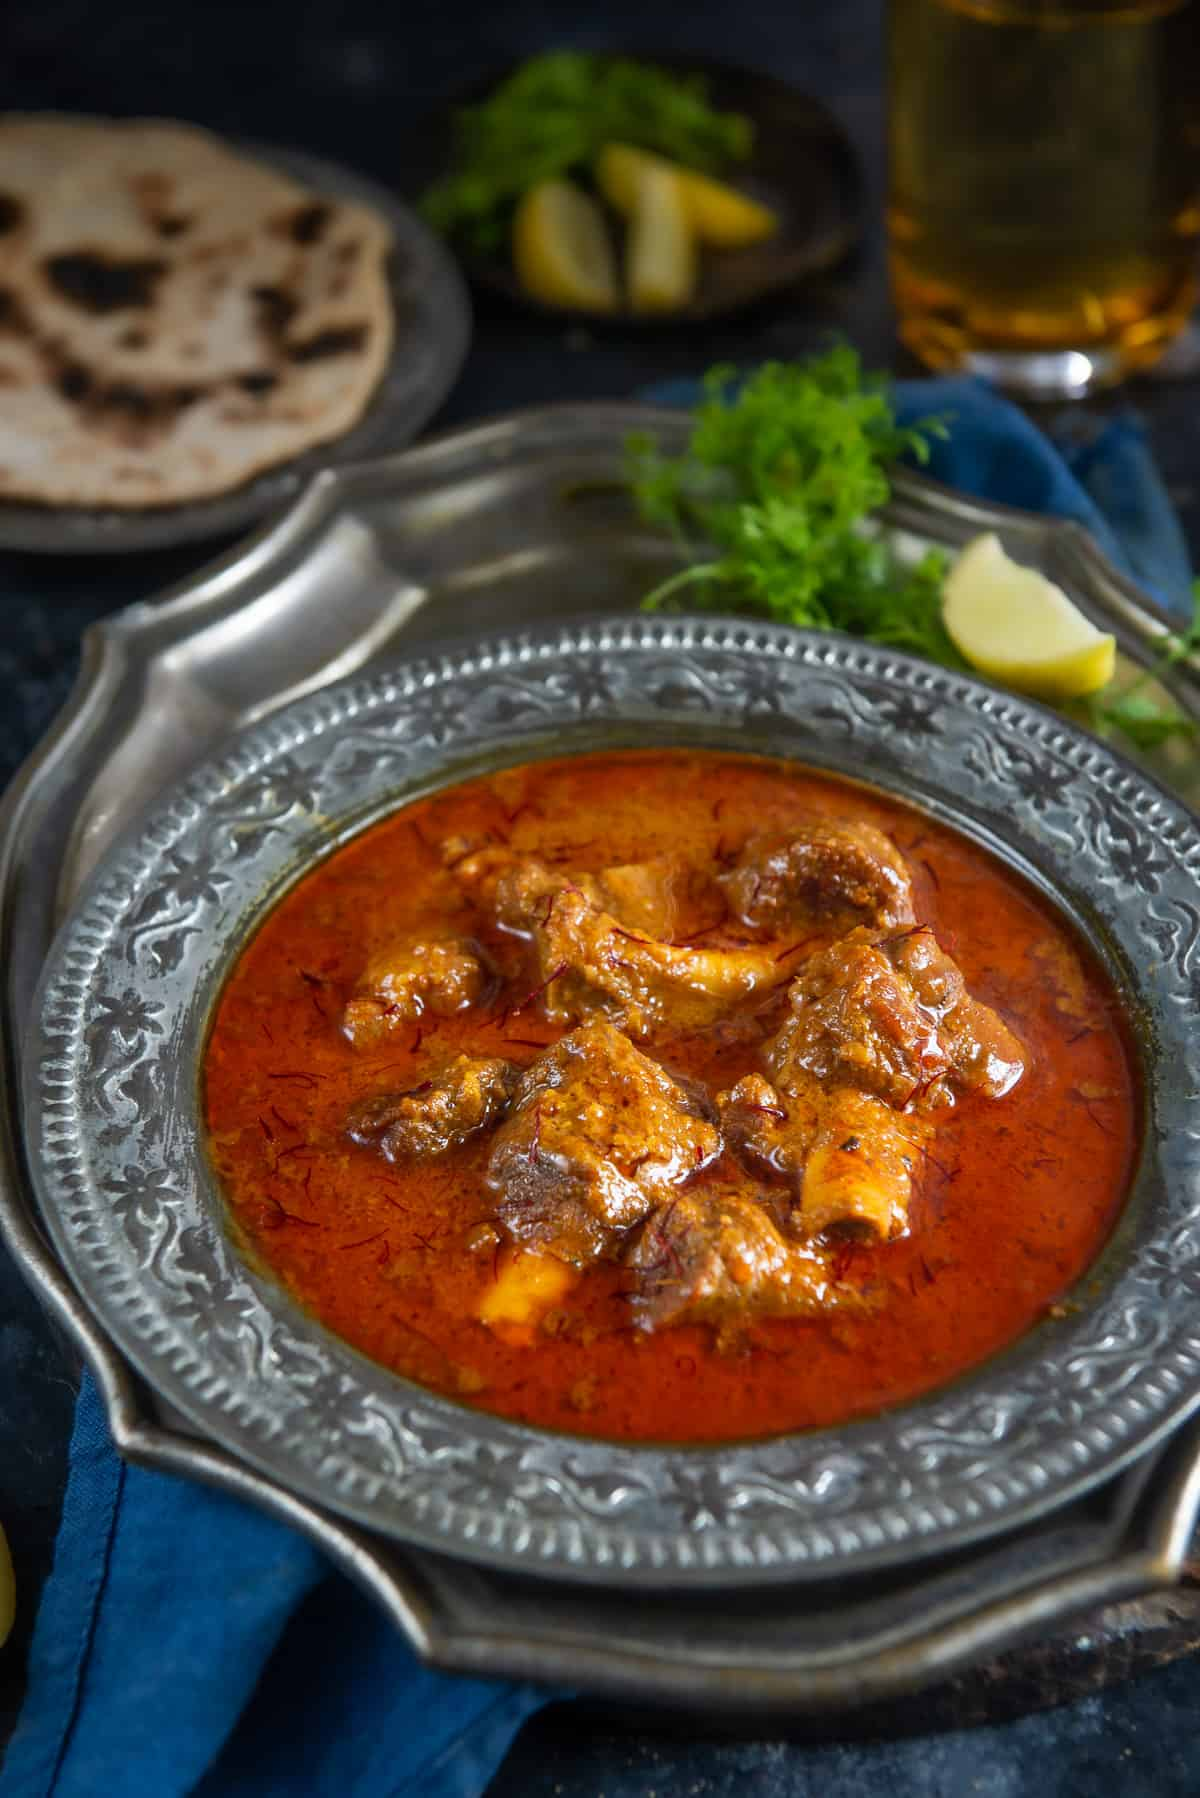 Mutton Korma served in a bowl.